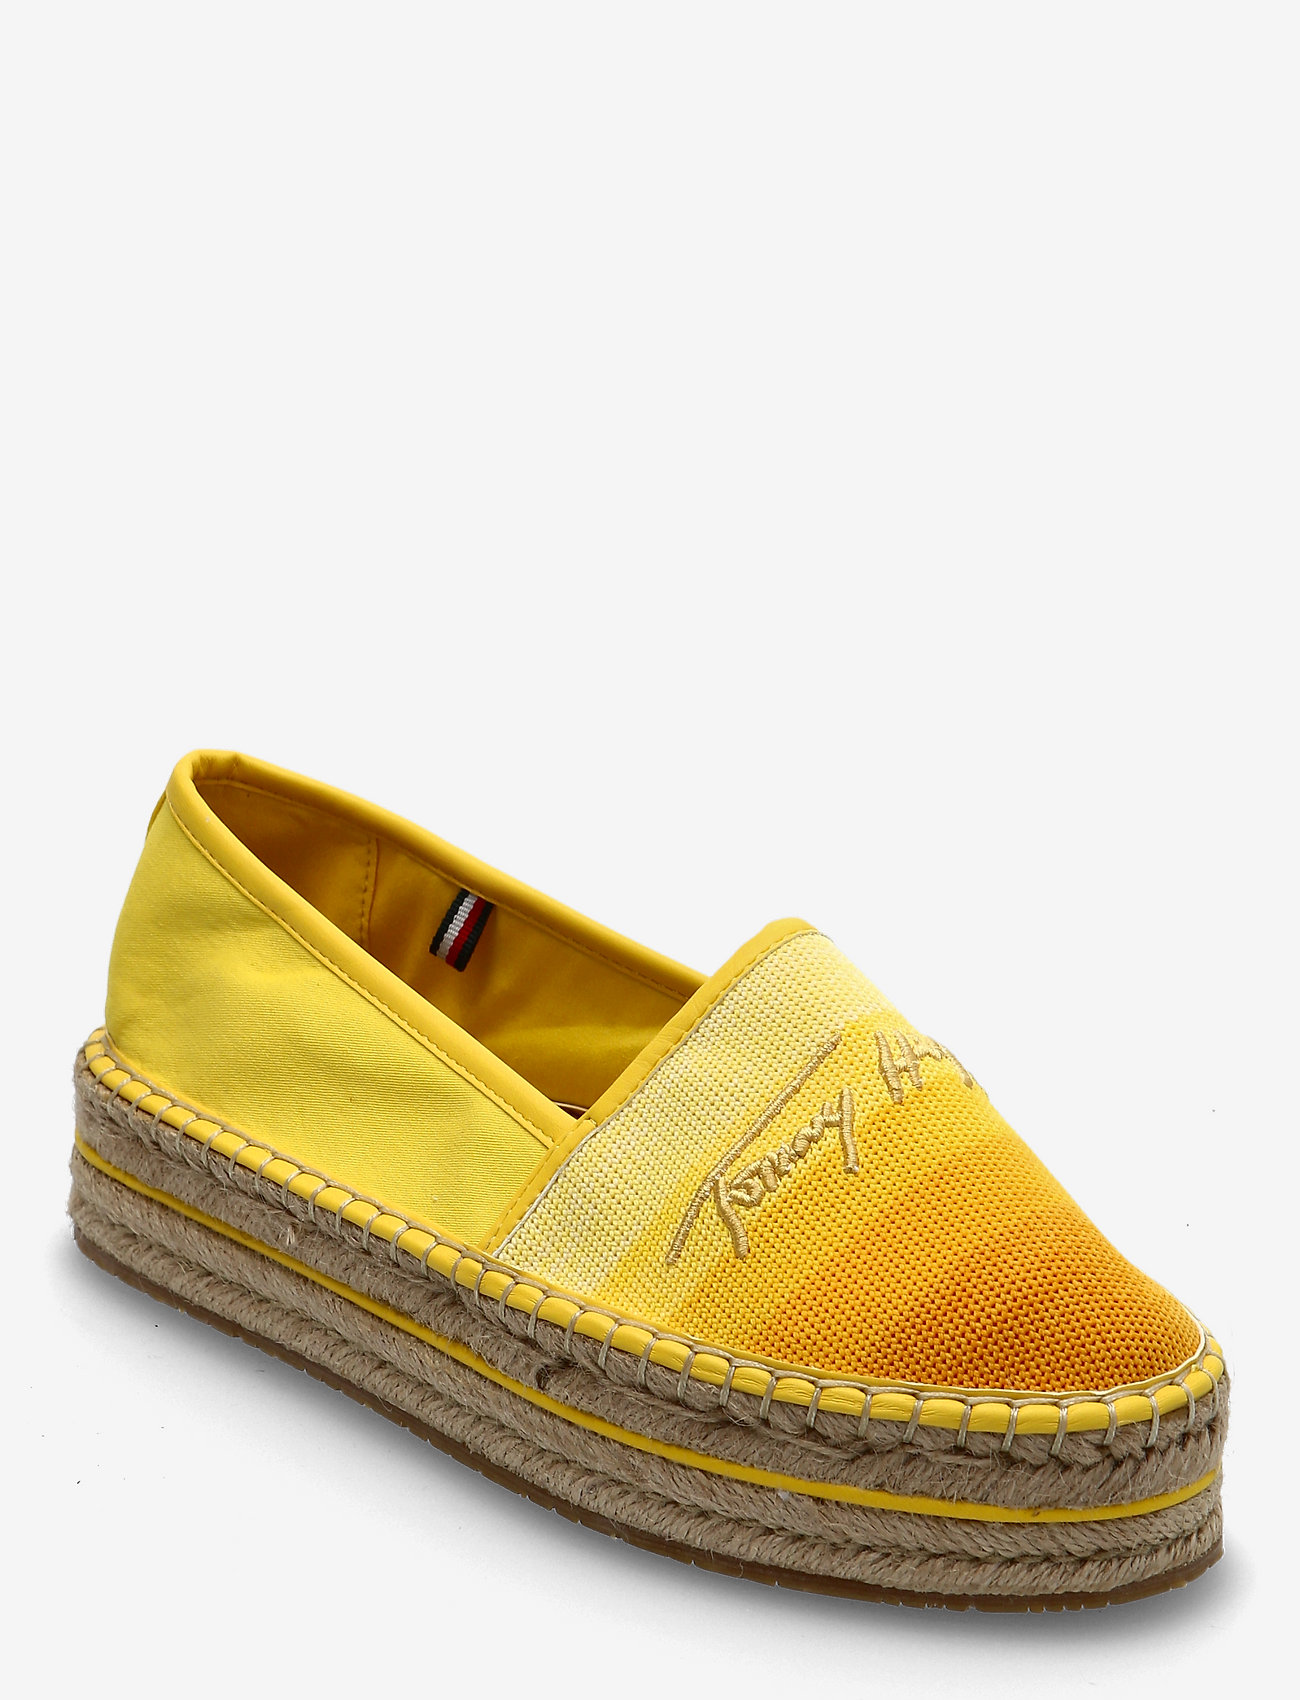 Tommy Hilfiger - TOMMY GRADIENT ESPADRILLE - flat espadrilles - vivid yellow - 0